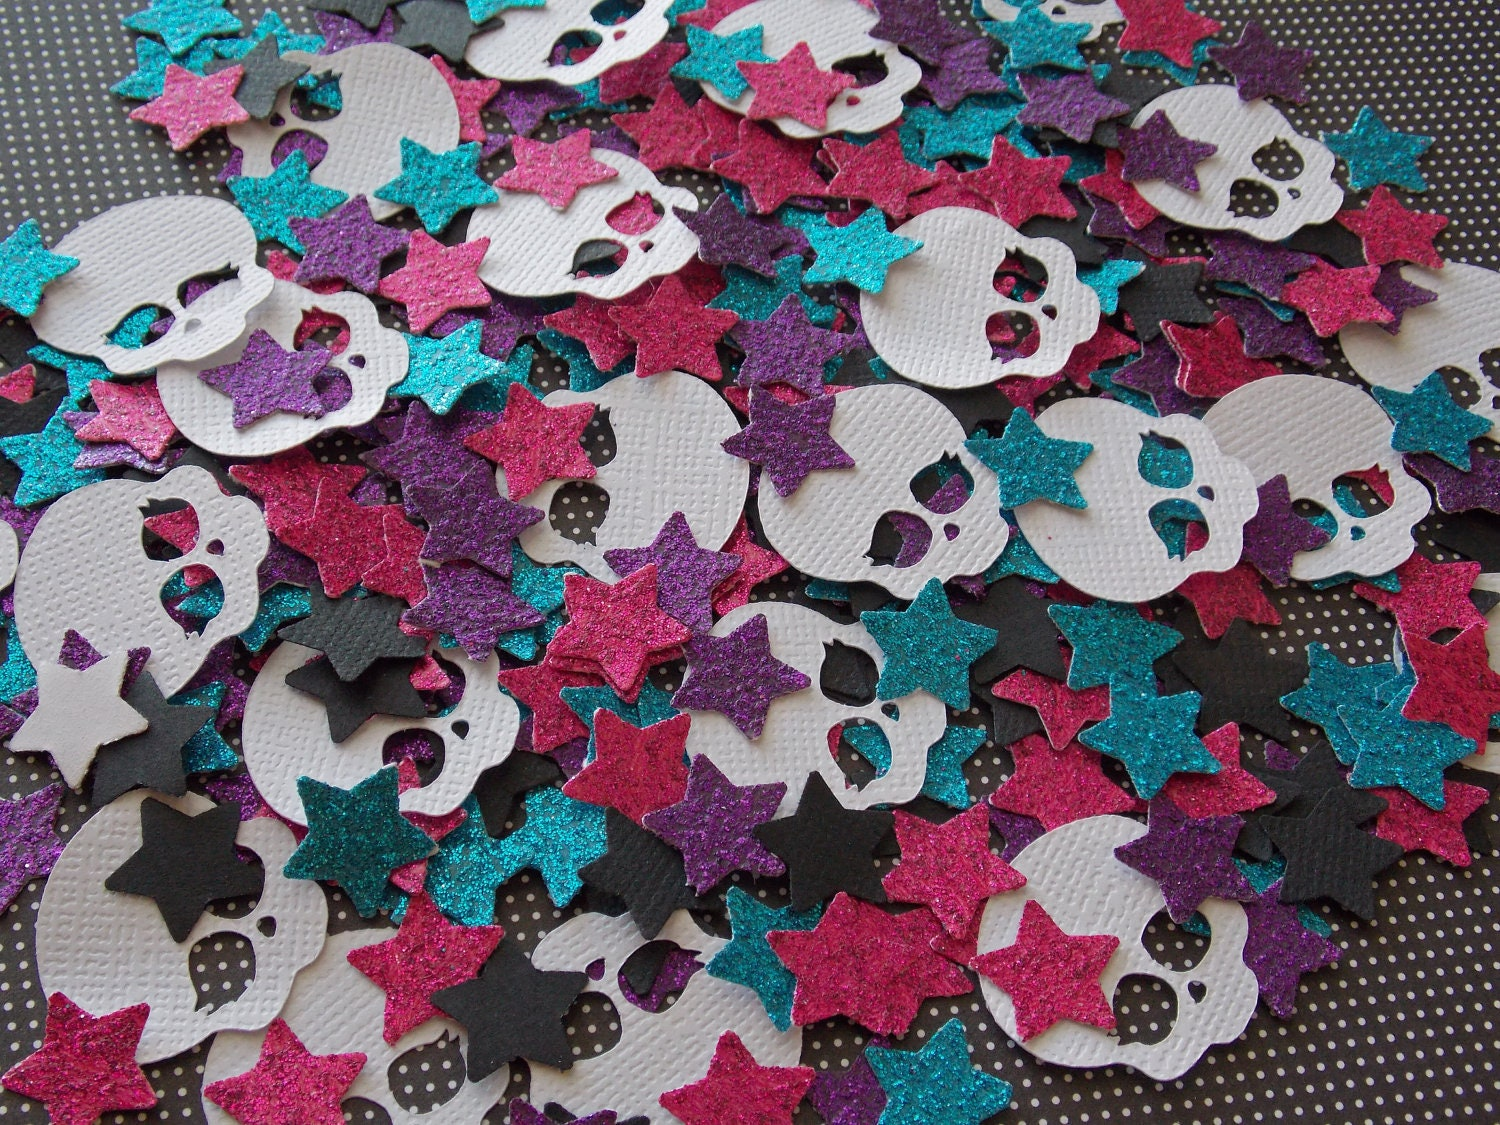 Monster High Inspired Confetti Mix 200 Pieces by Steph1999 on Etsy